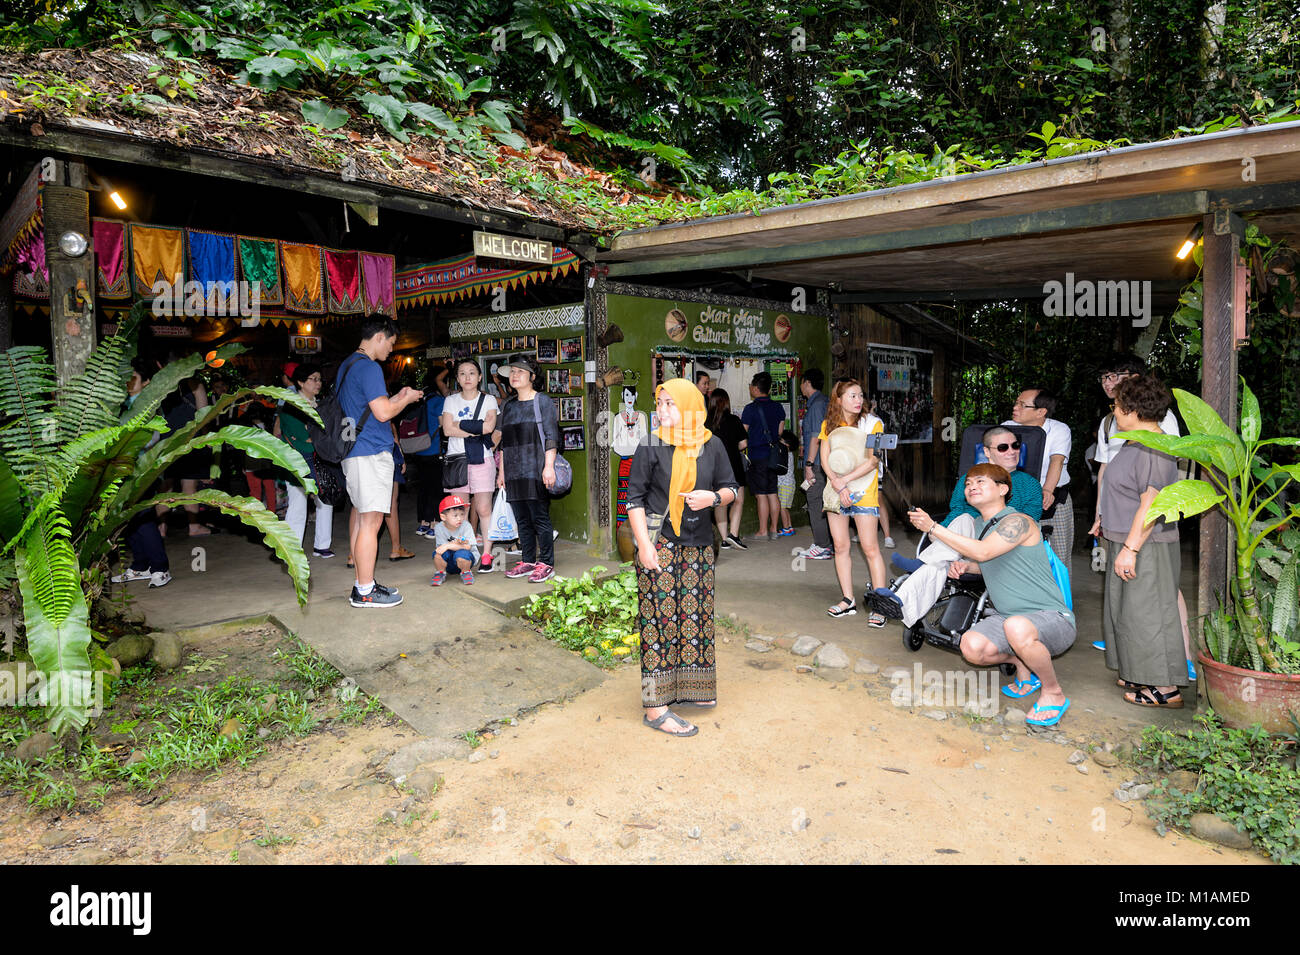 tourists-at-the-entrance-of-mari-mari-cu